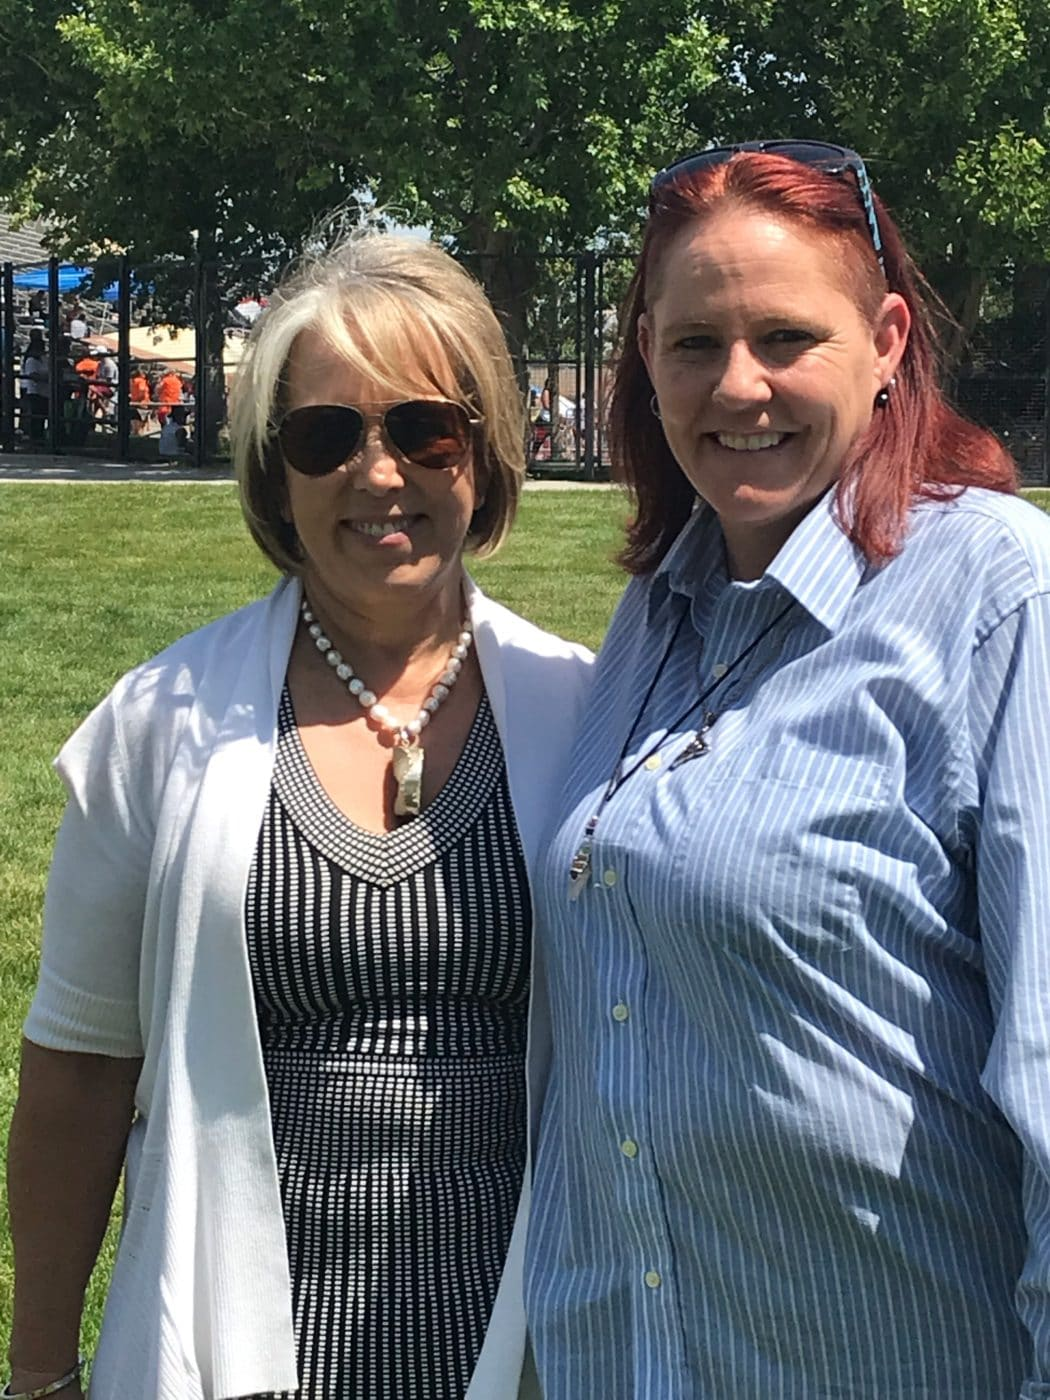 Kaydee Conticelli, Executive Director for Community Options, met with Michelle Lujan Grisham, Governor of New Mexico, to talk about the reduction of the waiting list for people with developmental disabilities in that state.